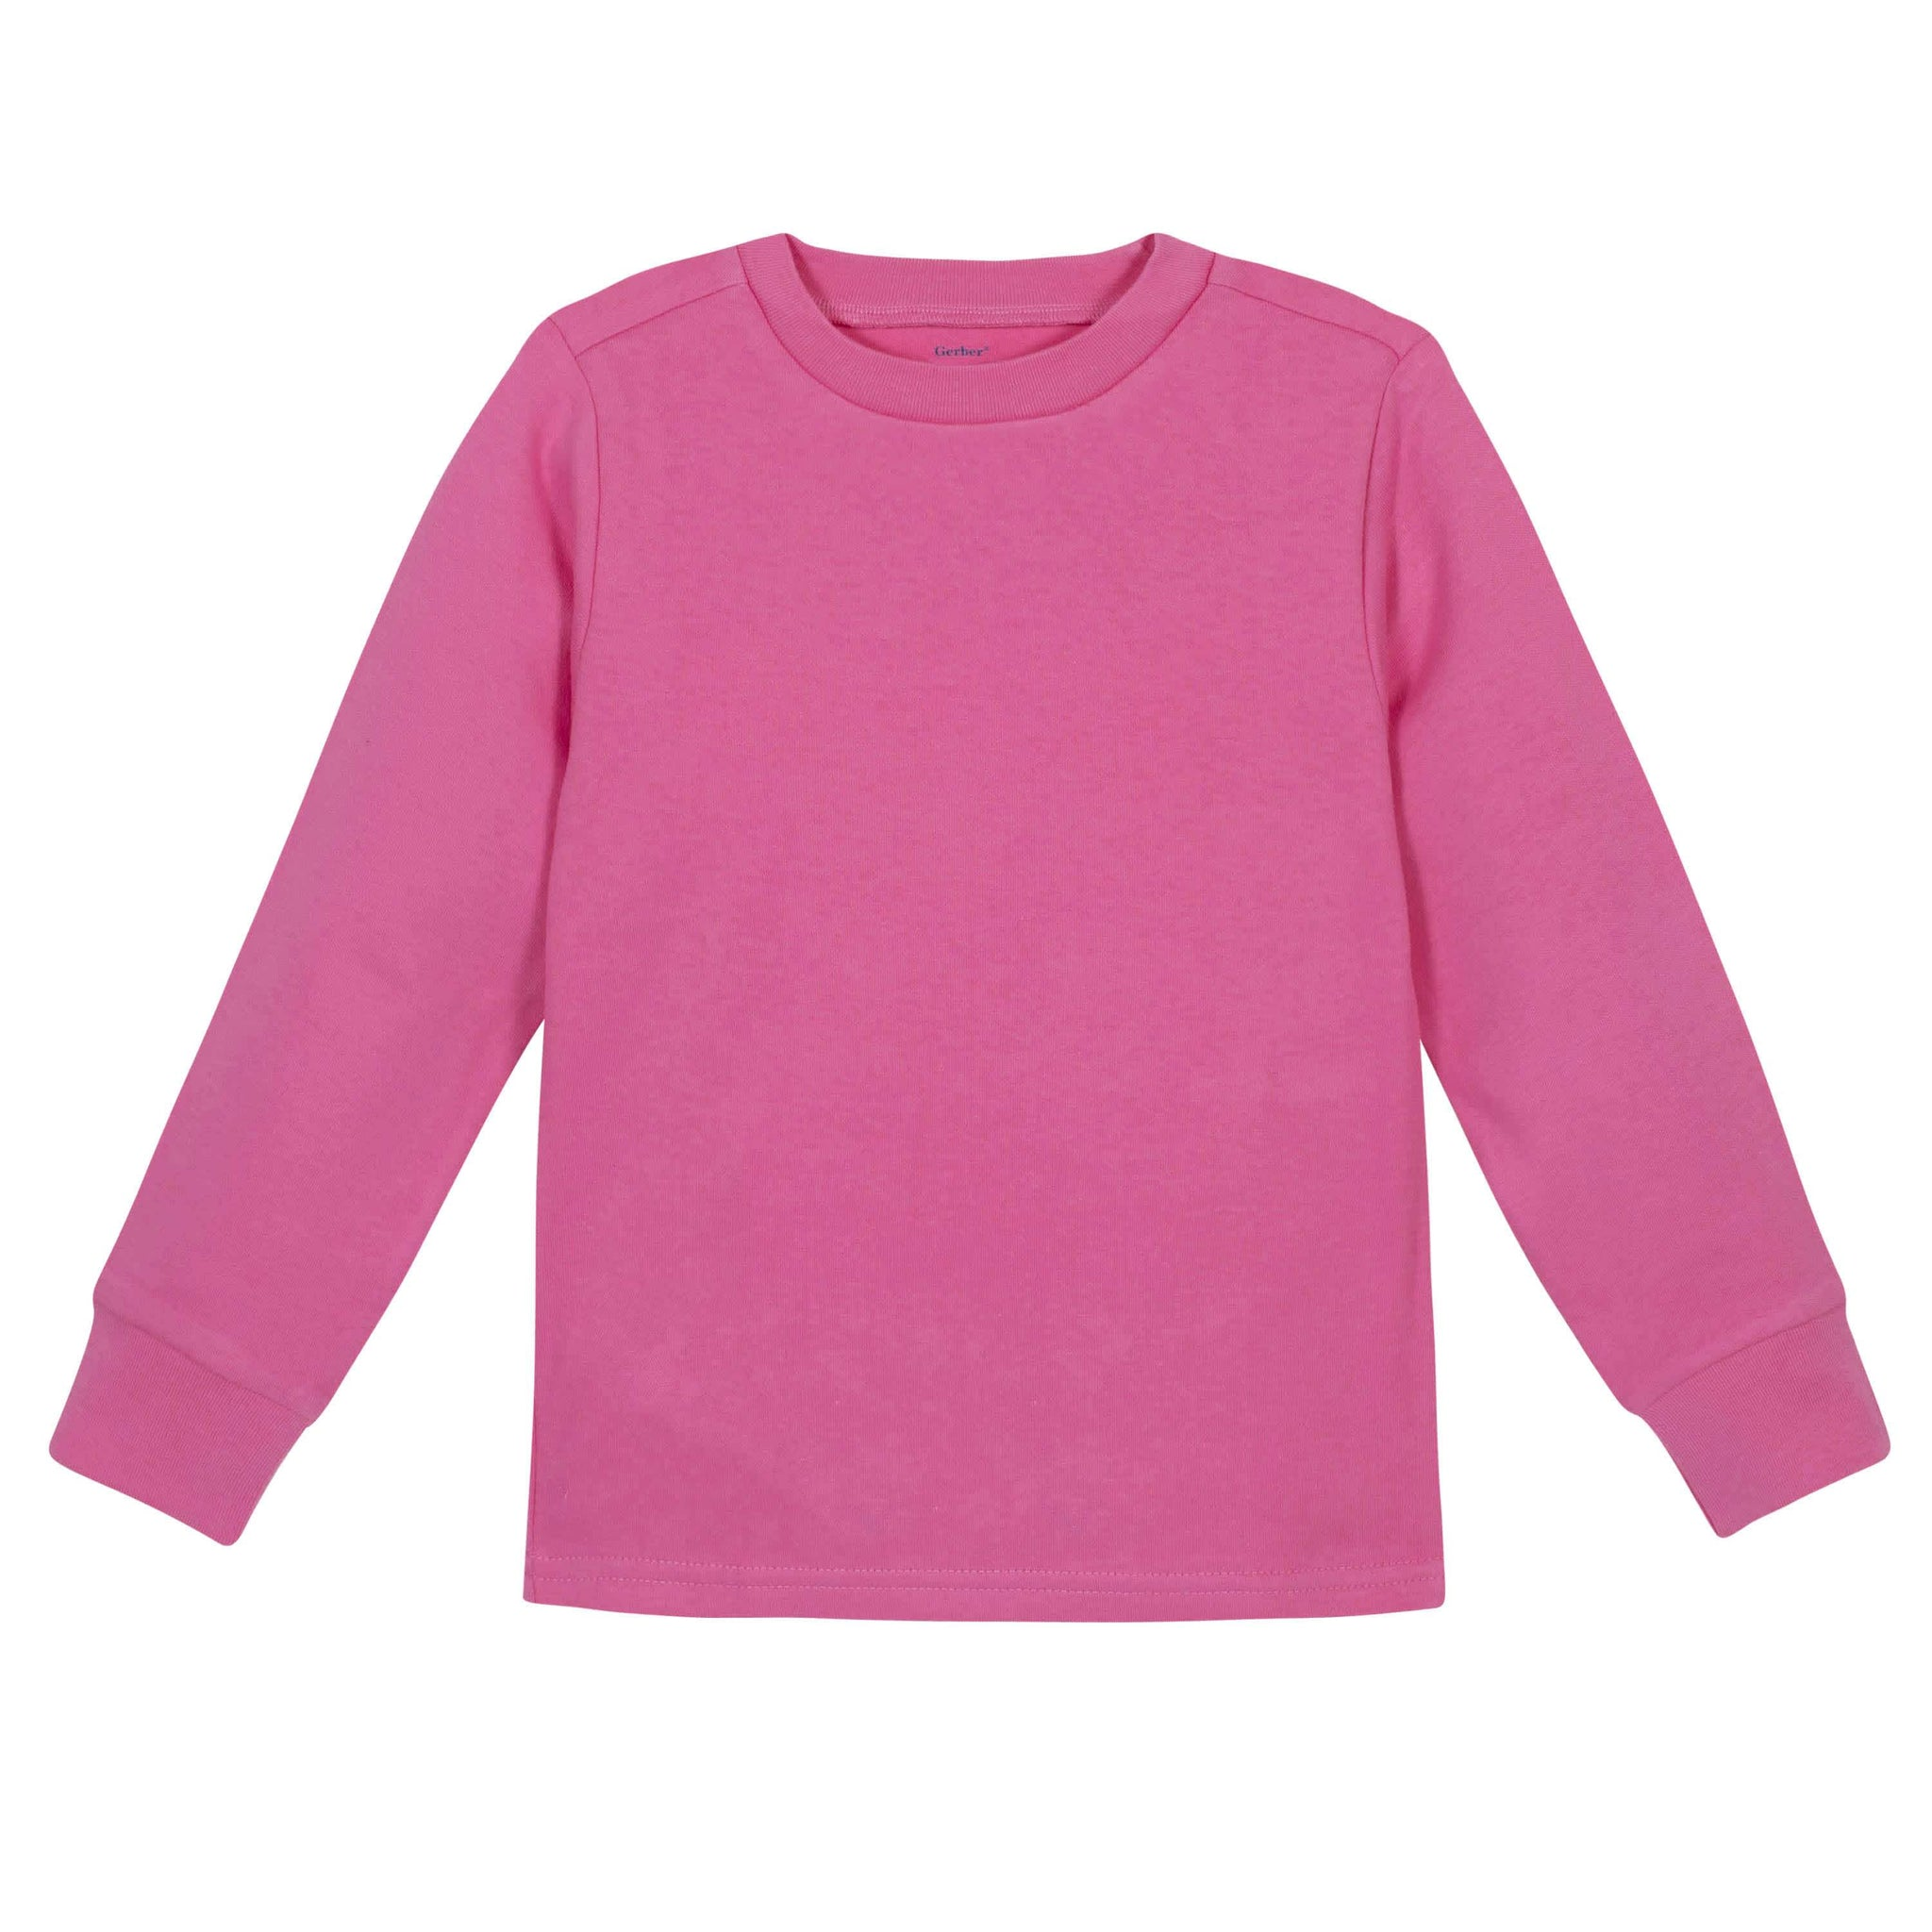 Gerber® Premium Hot Pink Long Sleeve Tee Shirt - 10 Colors Available